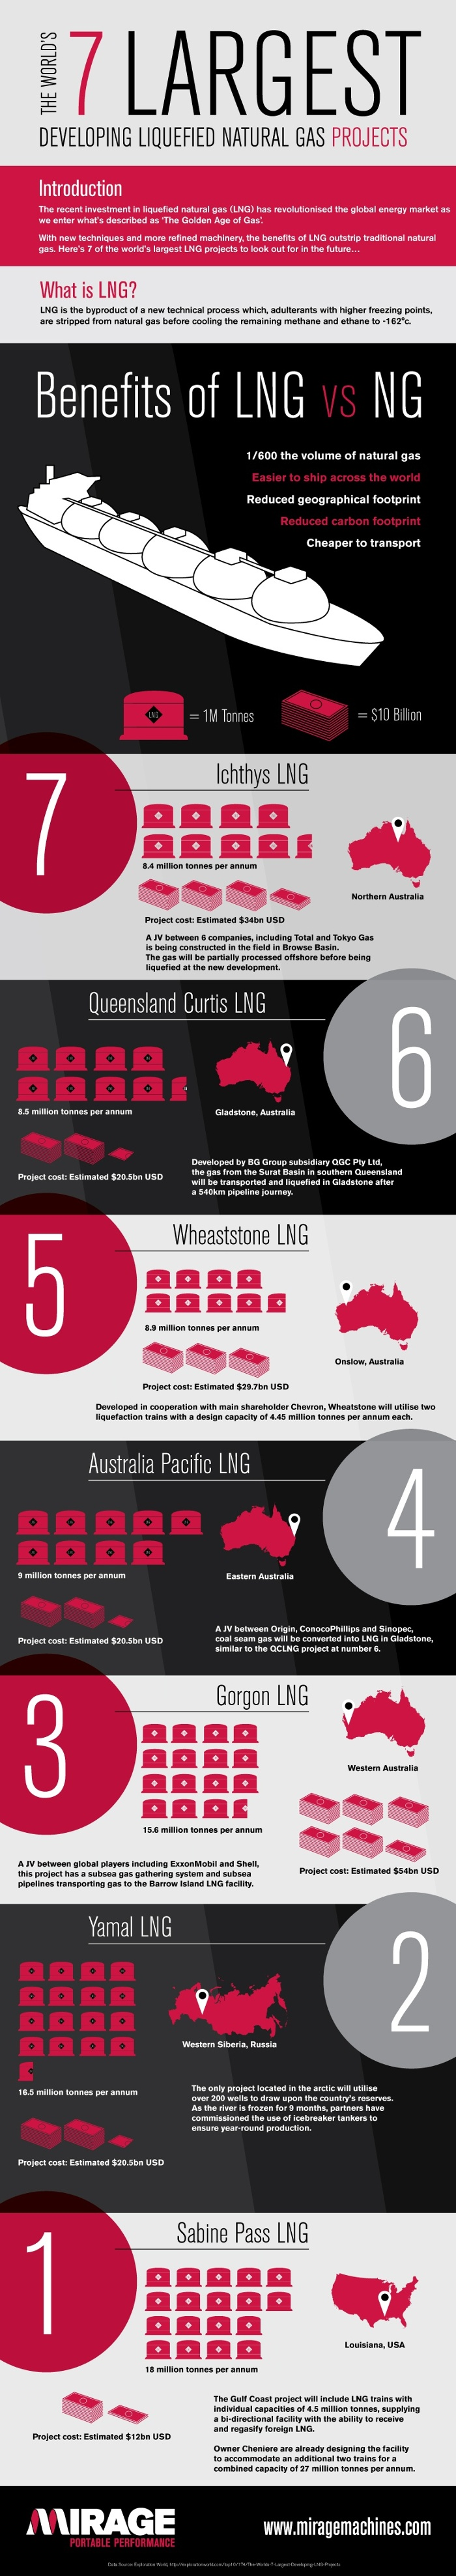 World's 7 Largest Developing Liquefied Natural Gas Projects